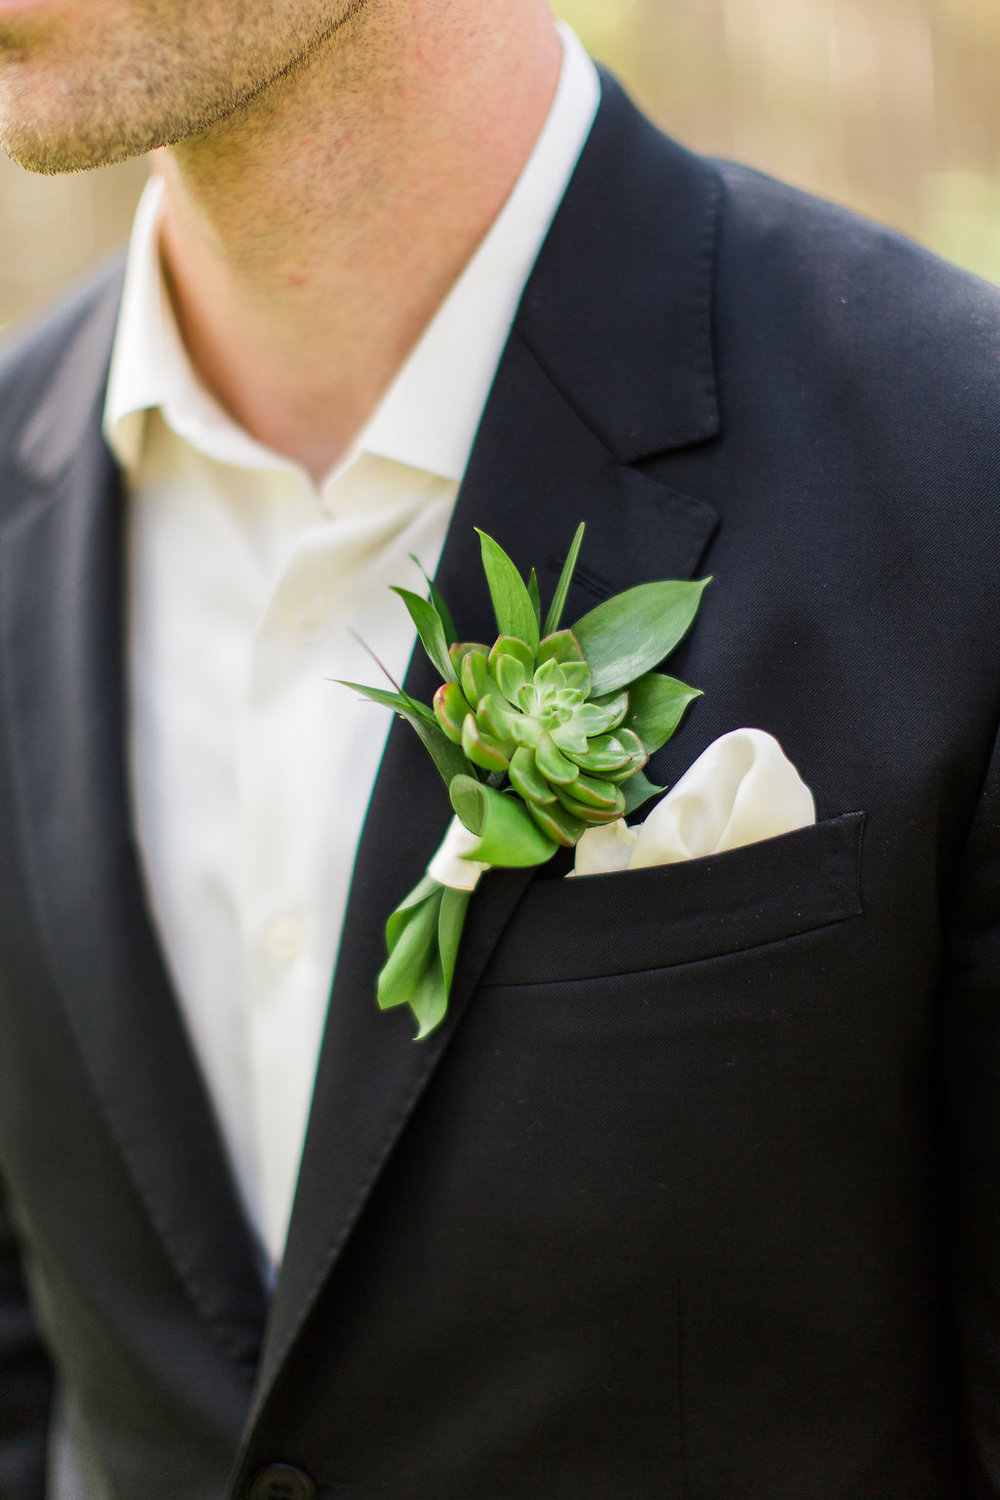 A Simple Succulent Boutonnière Looked Great on this Groom